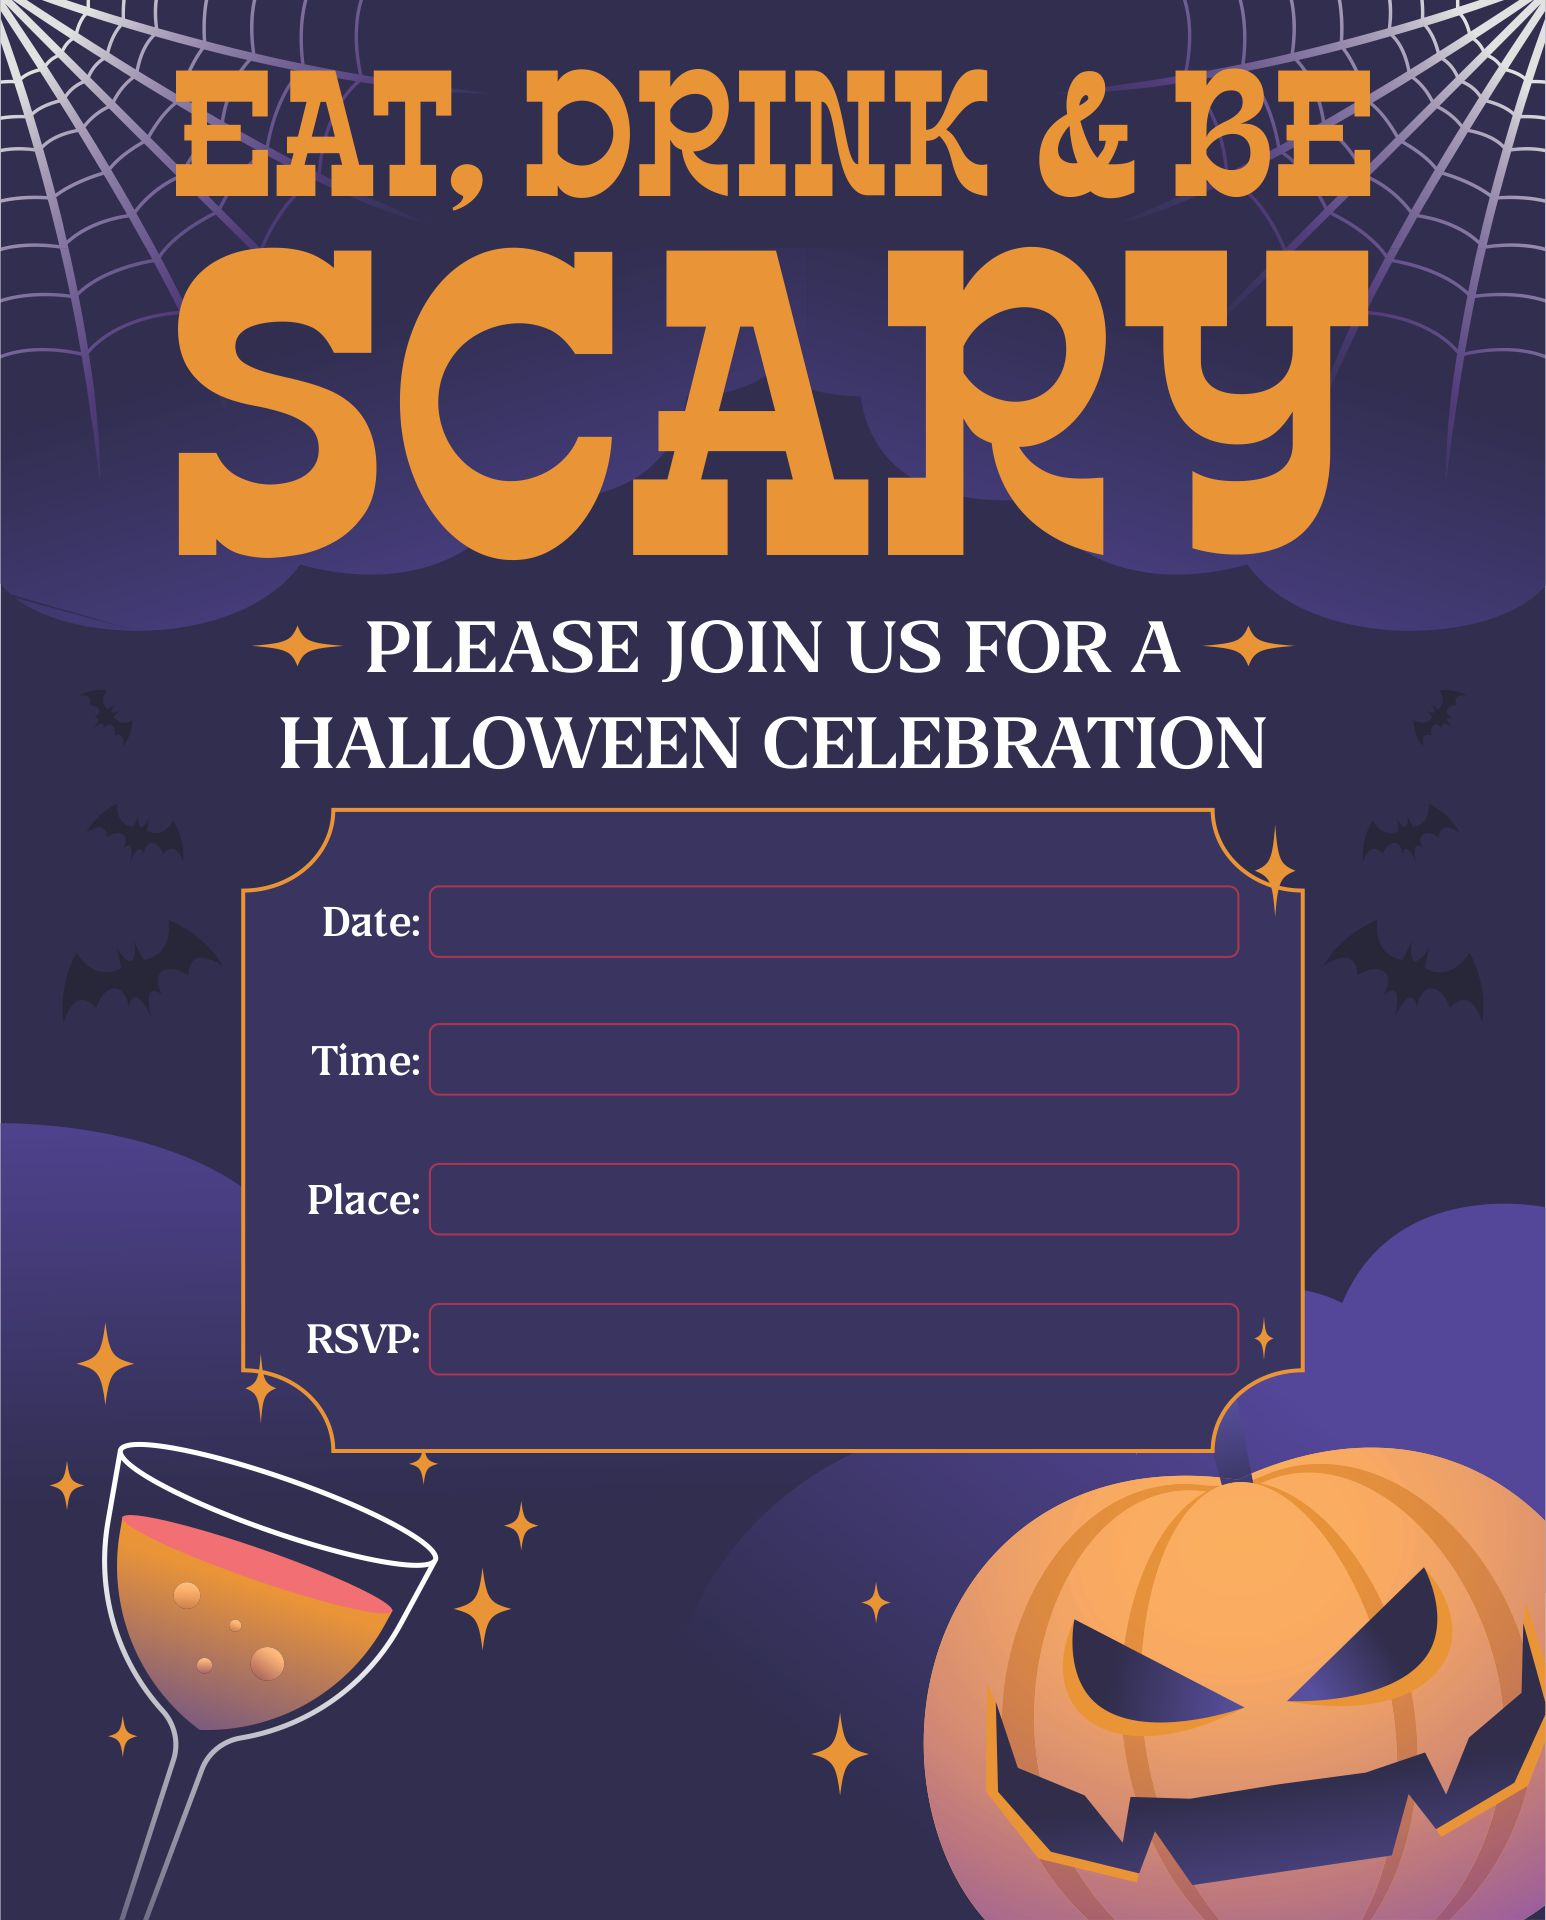 Cool Halloween Party Invitations was adorable invitation ideas